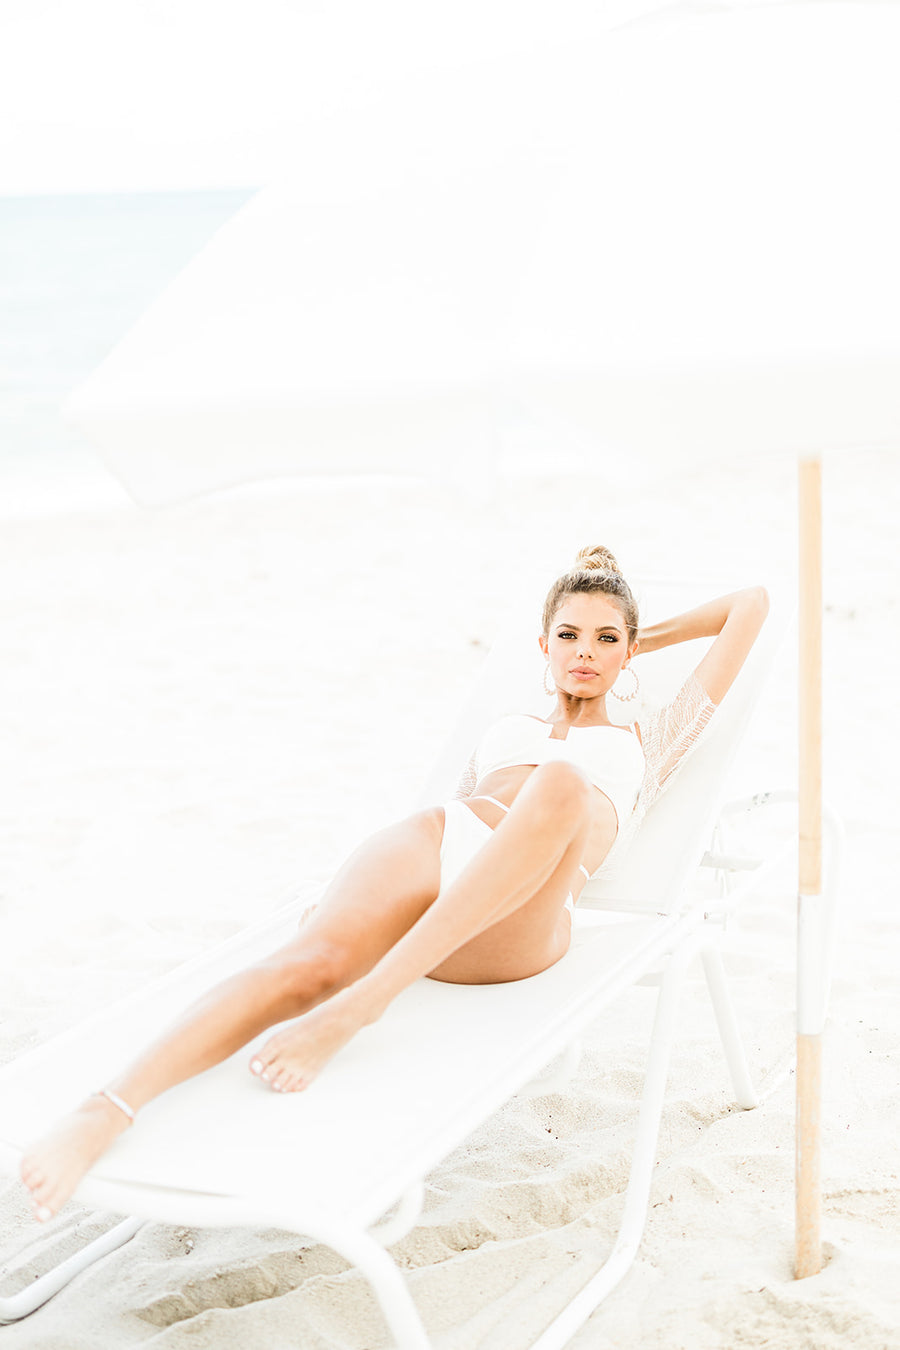 The Harley Bottom by Solid & Striped - The Beach Bride by Chic Parisien, a destination for beach weddings, bachelorettes and honeymoons